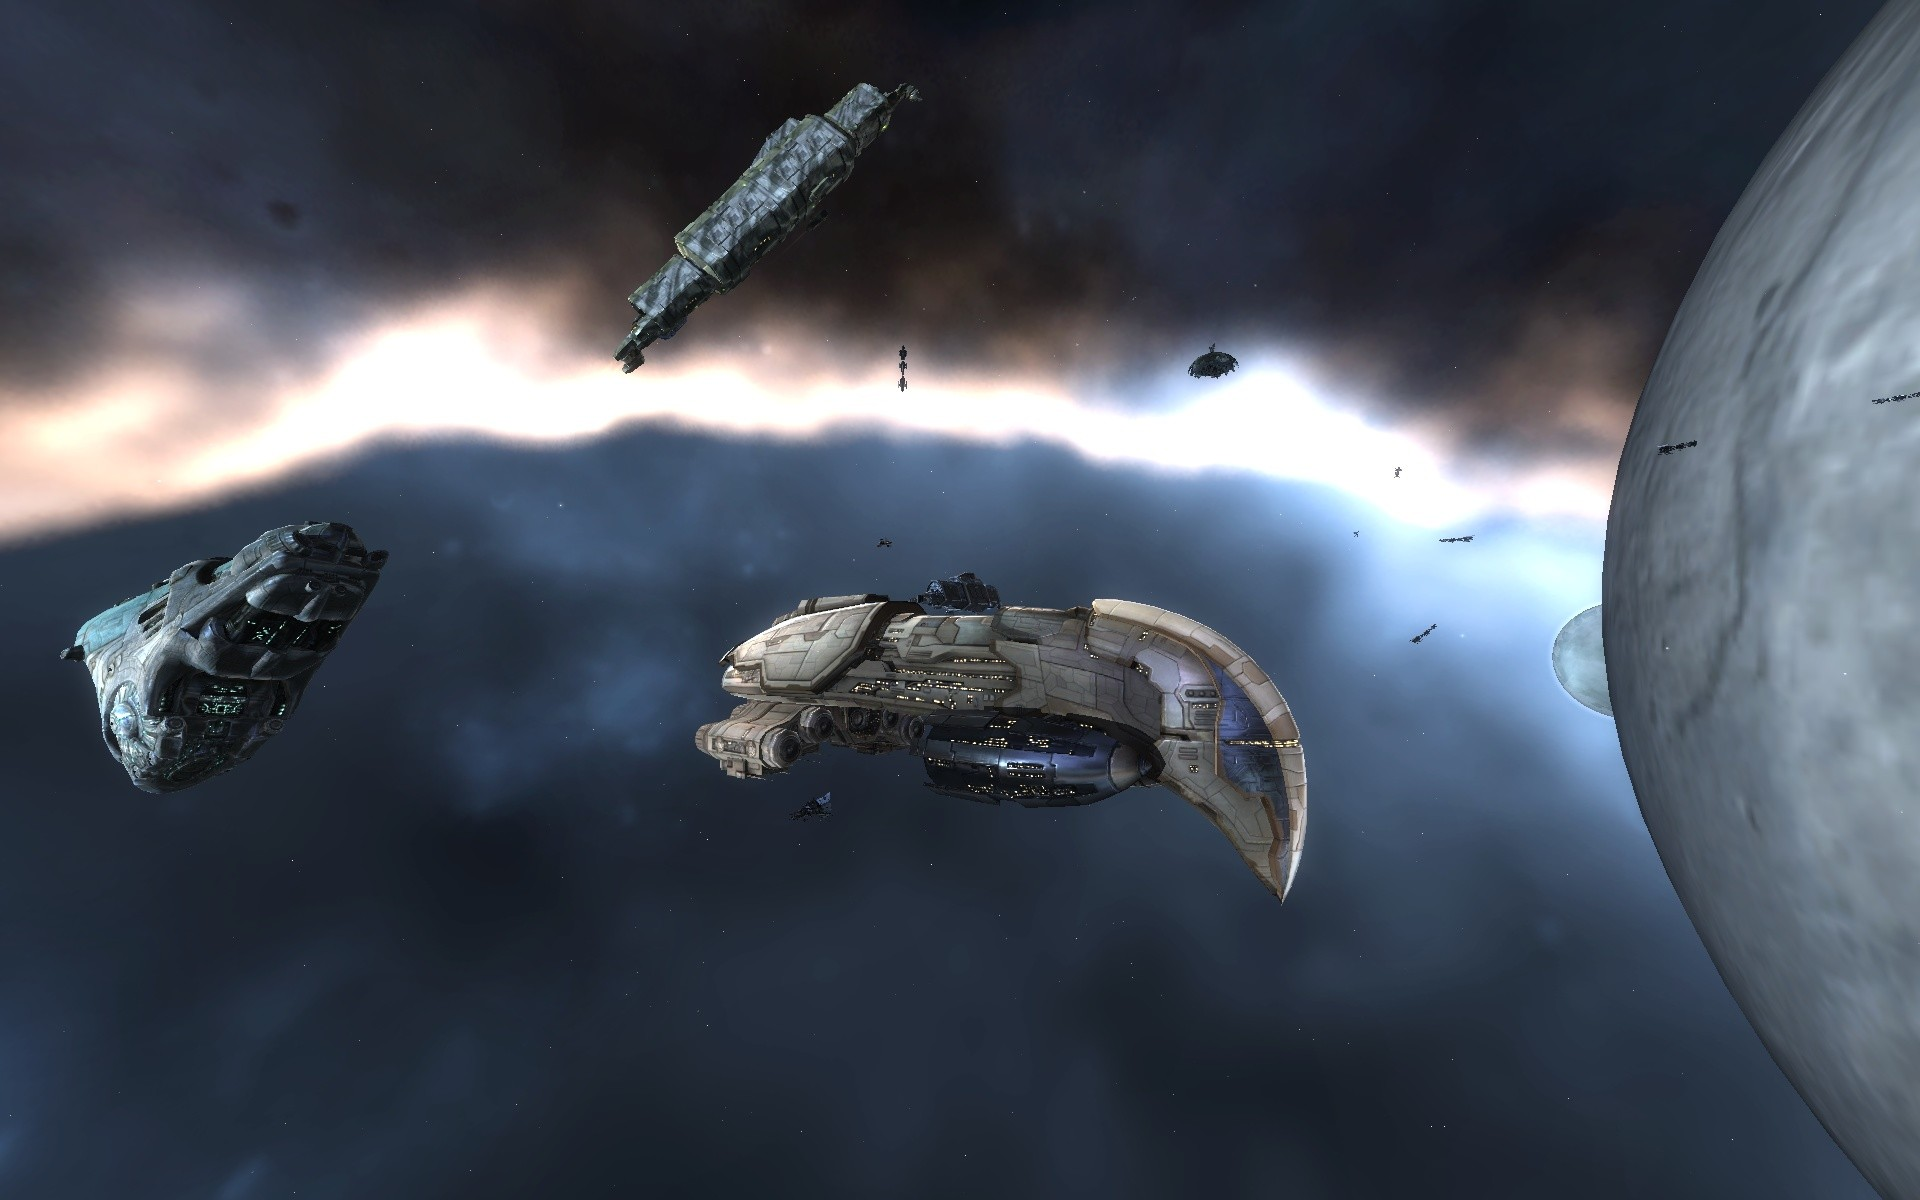 EVE Online - (New premium graphics) Amarr Ship, Gallente Ship, and what looks like a Blockade Runner Caldari ship